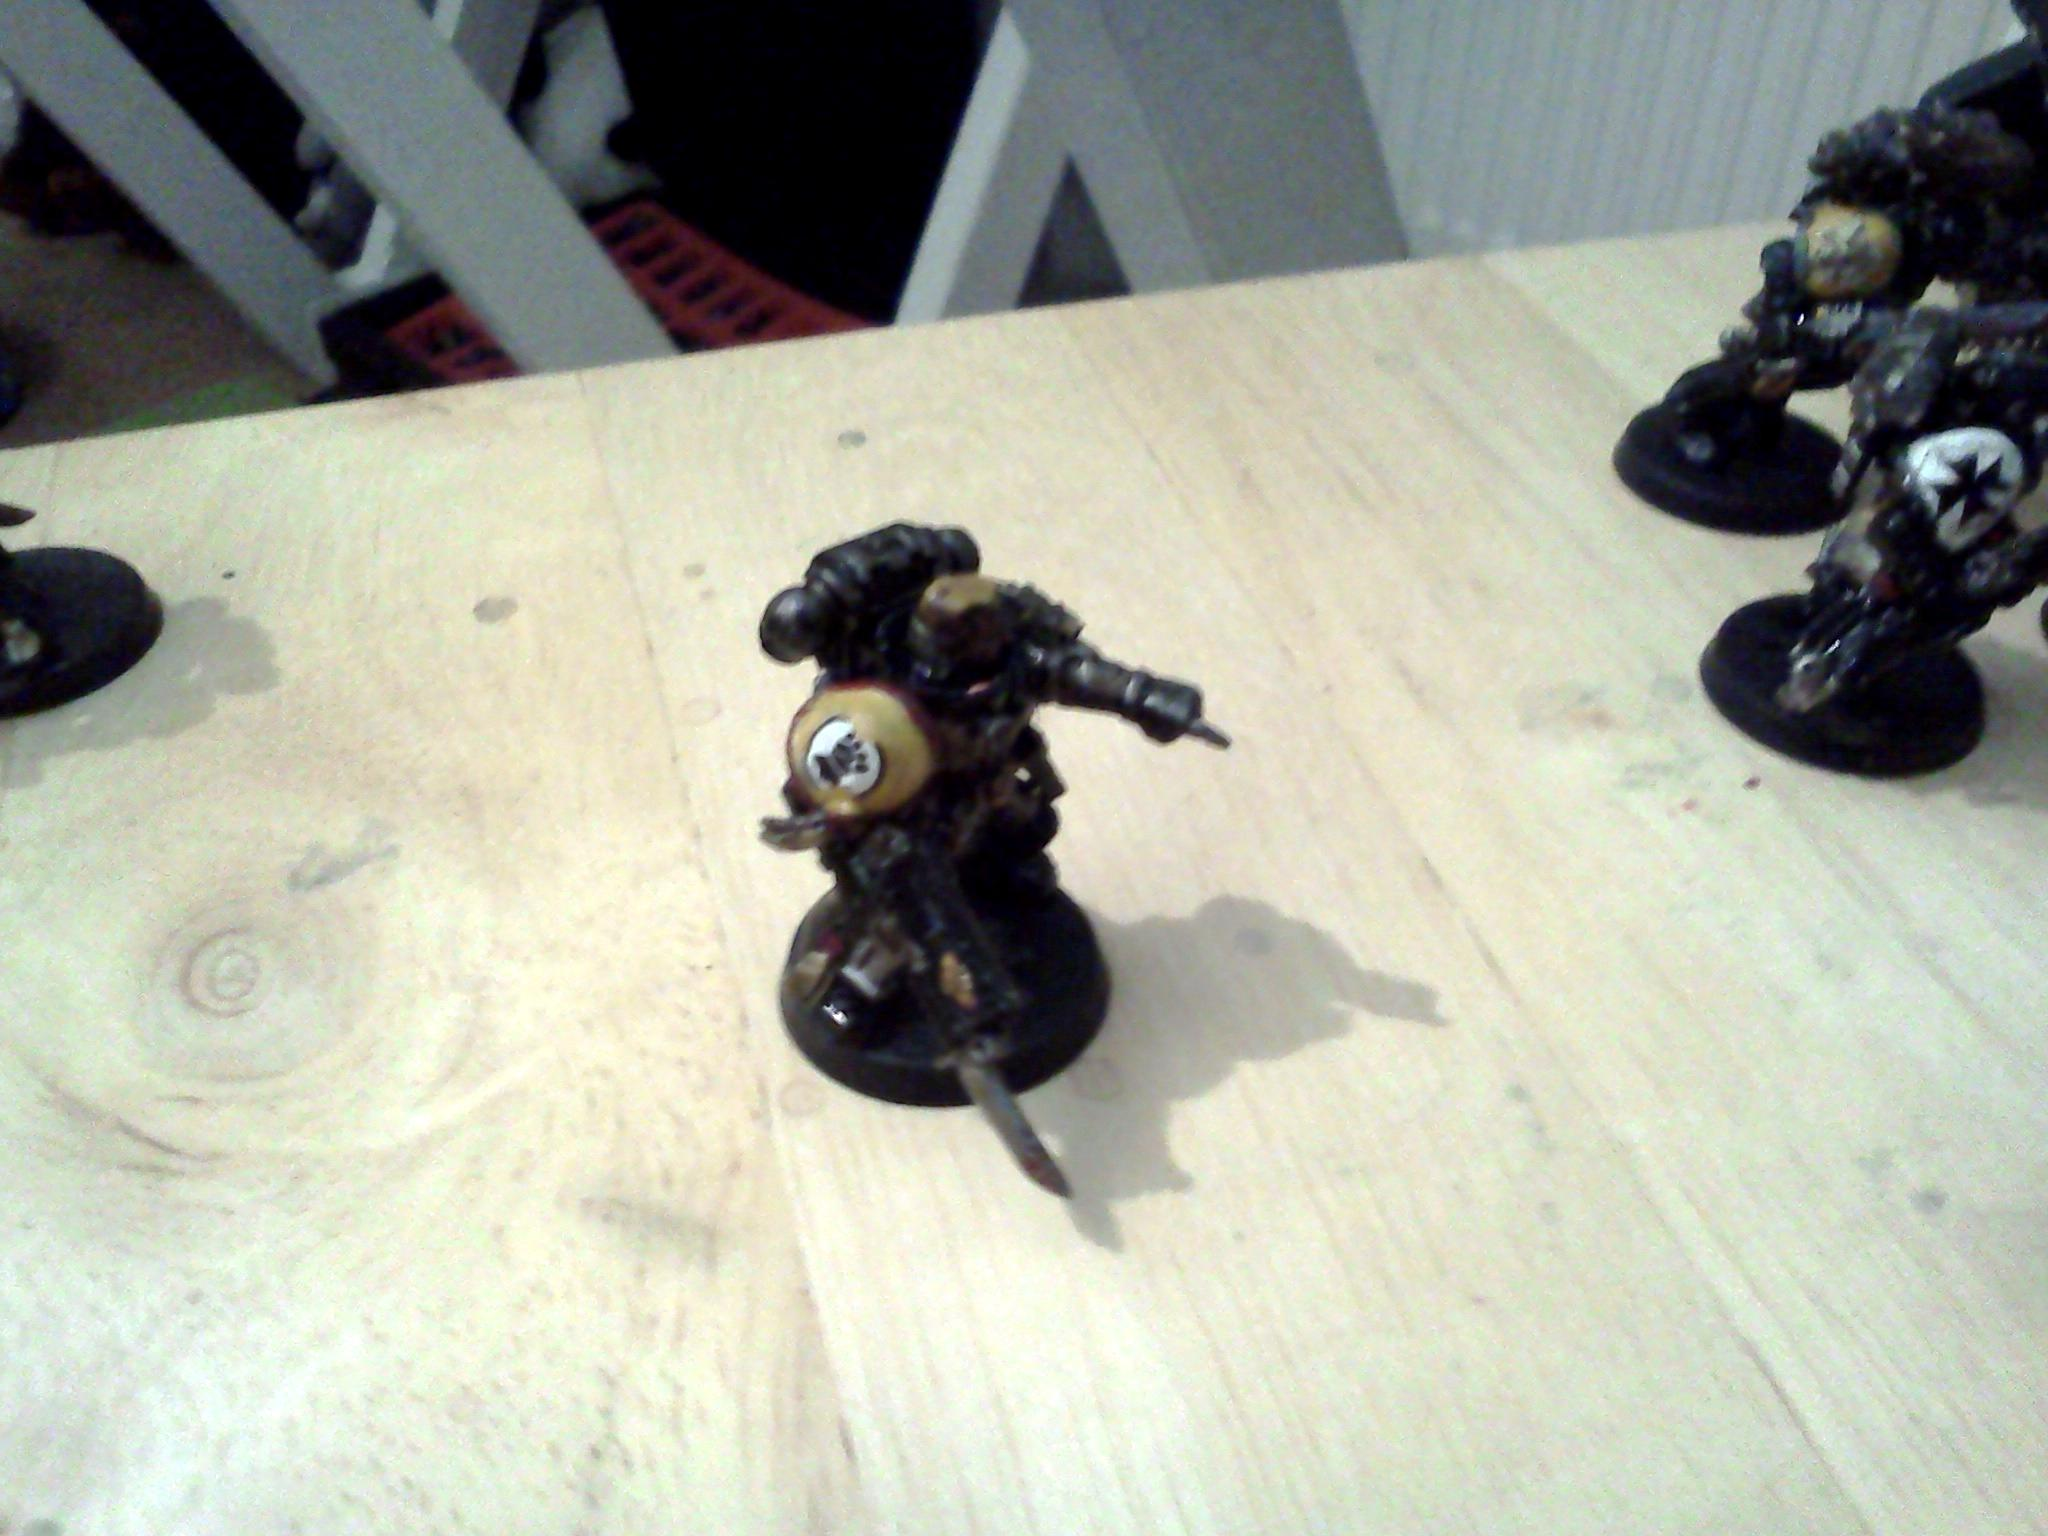 Deathwatch, Imperial Fists